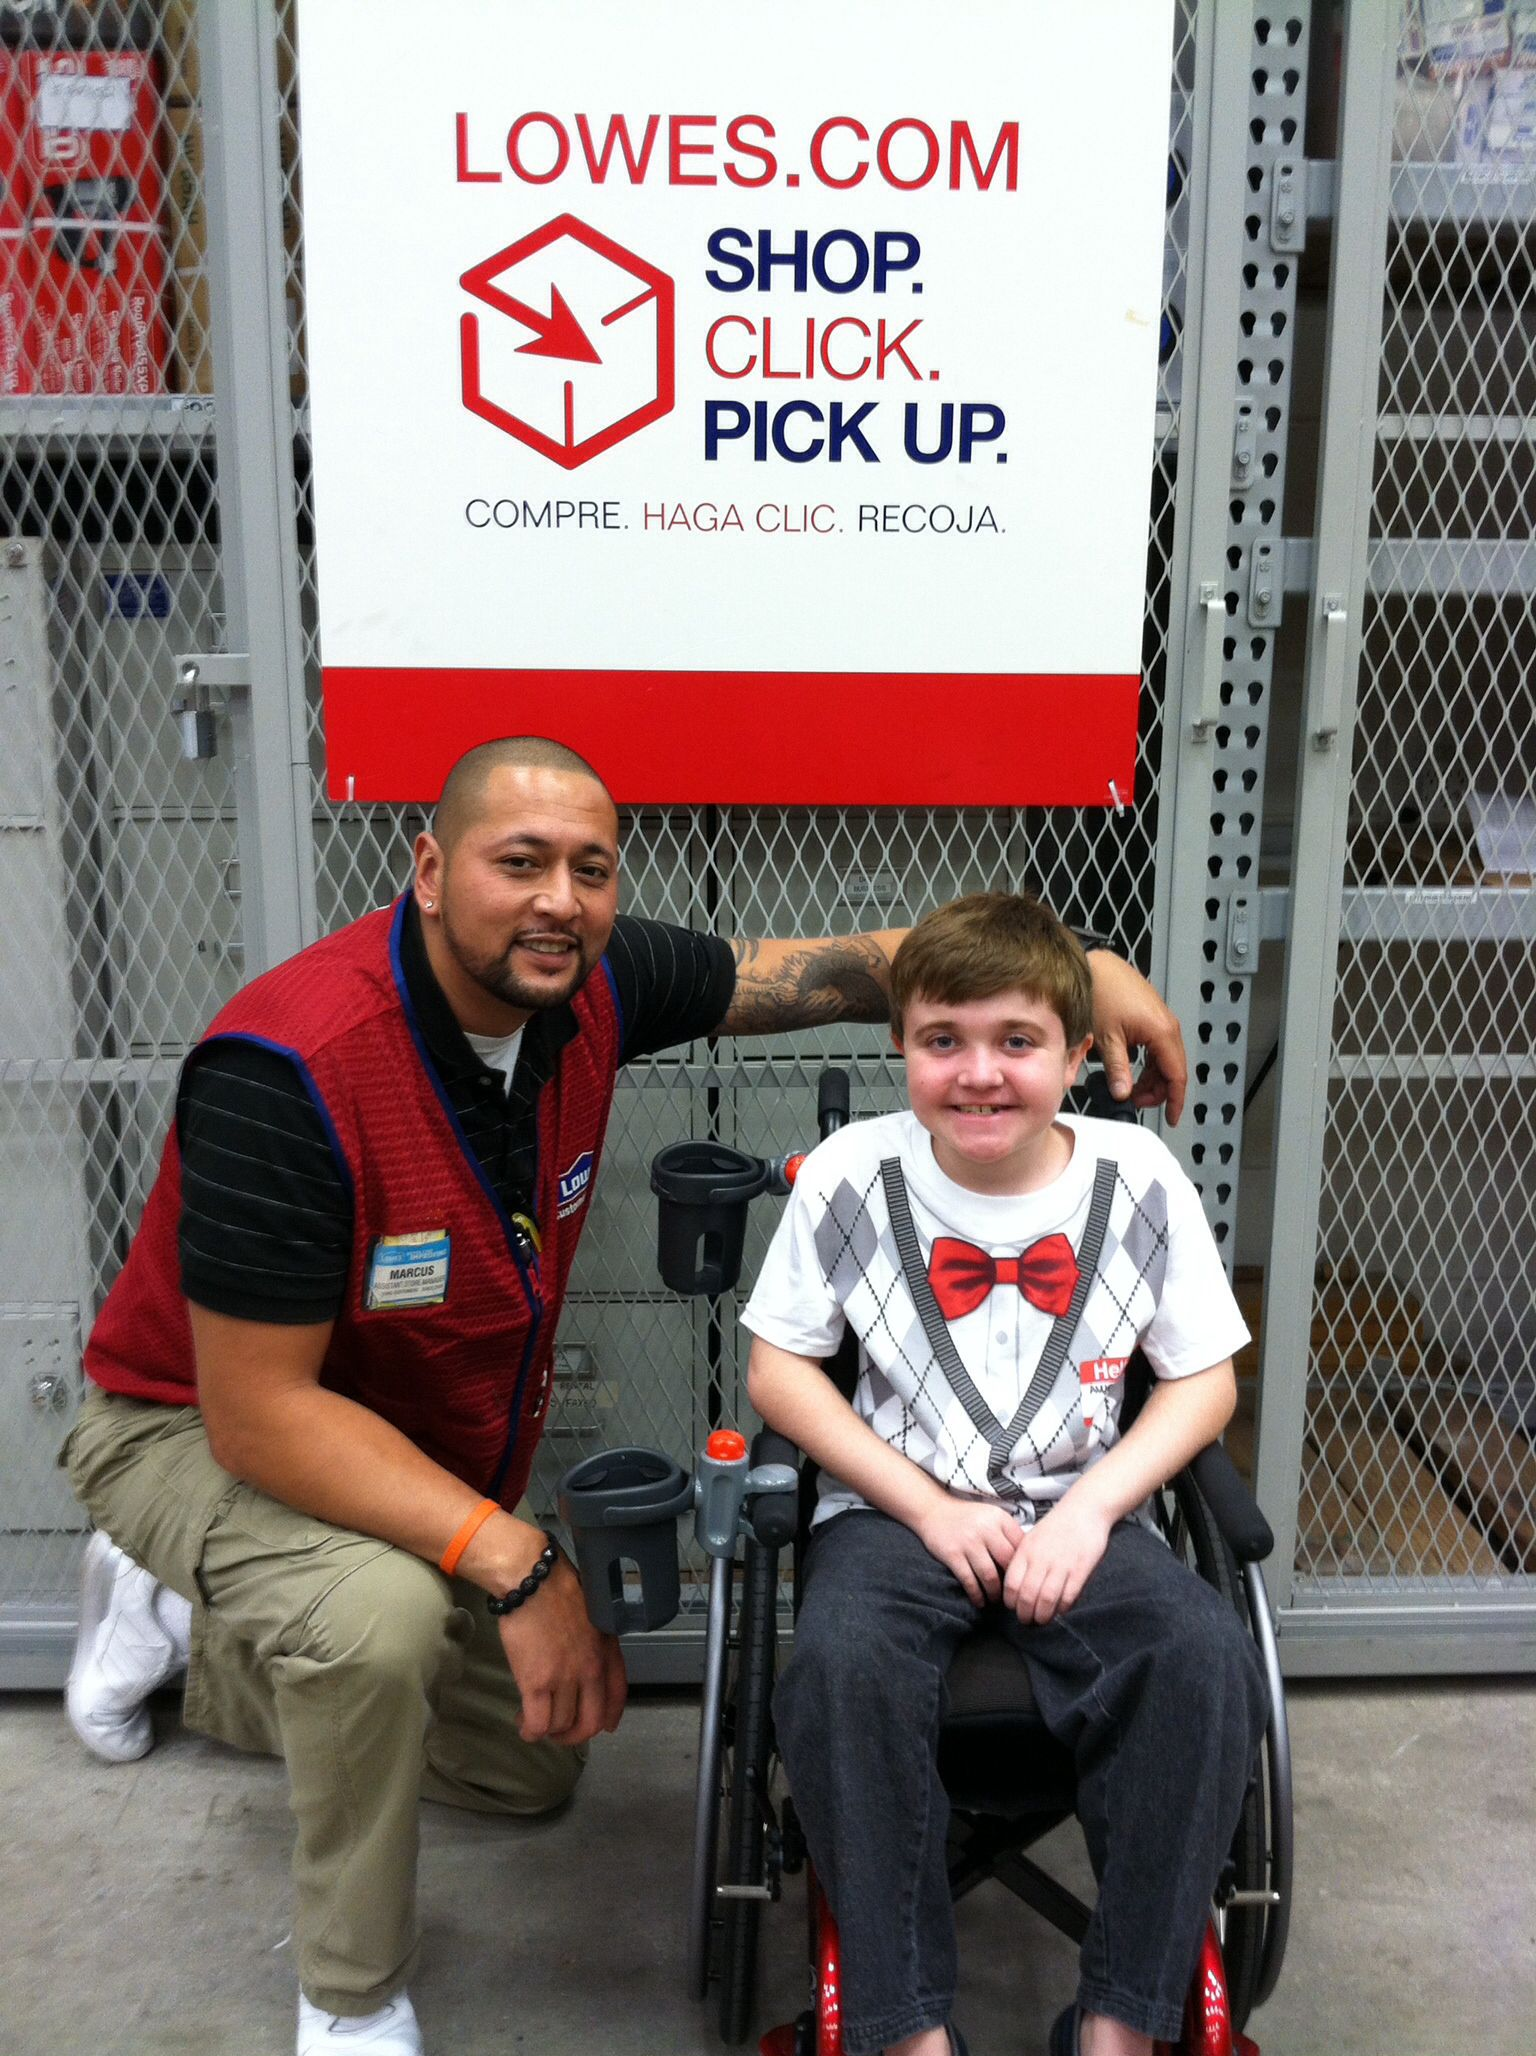 anthony visited lowes in winter garden florida to thank the